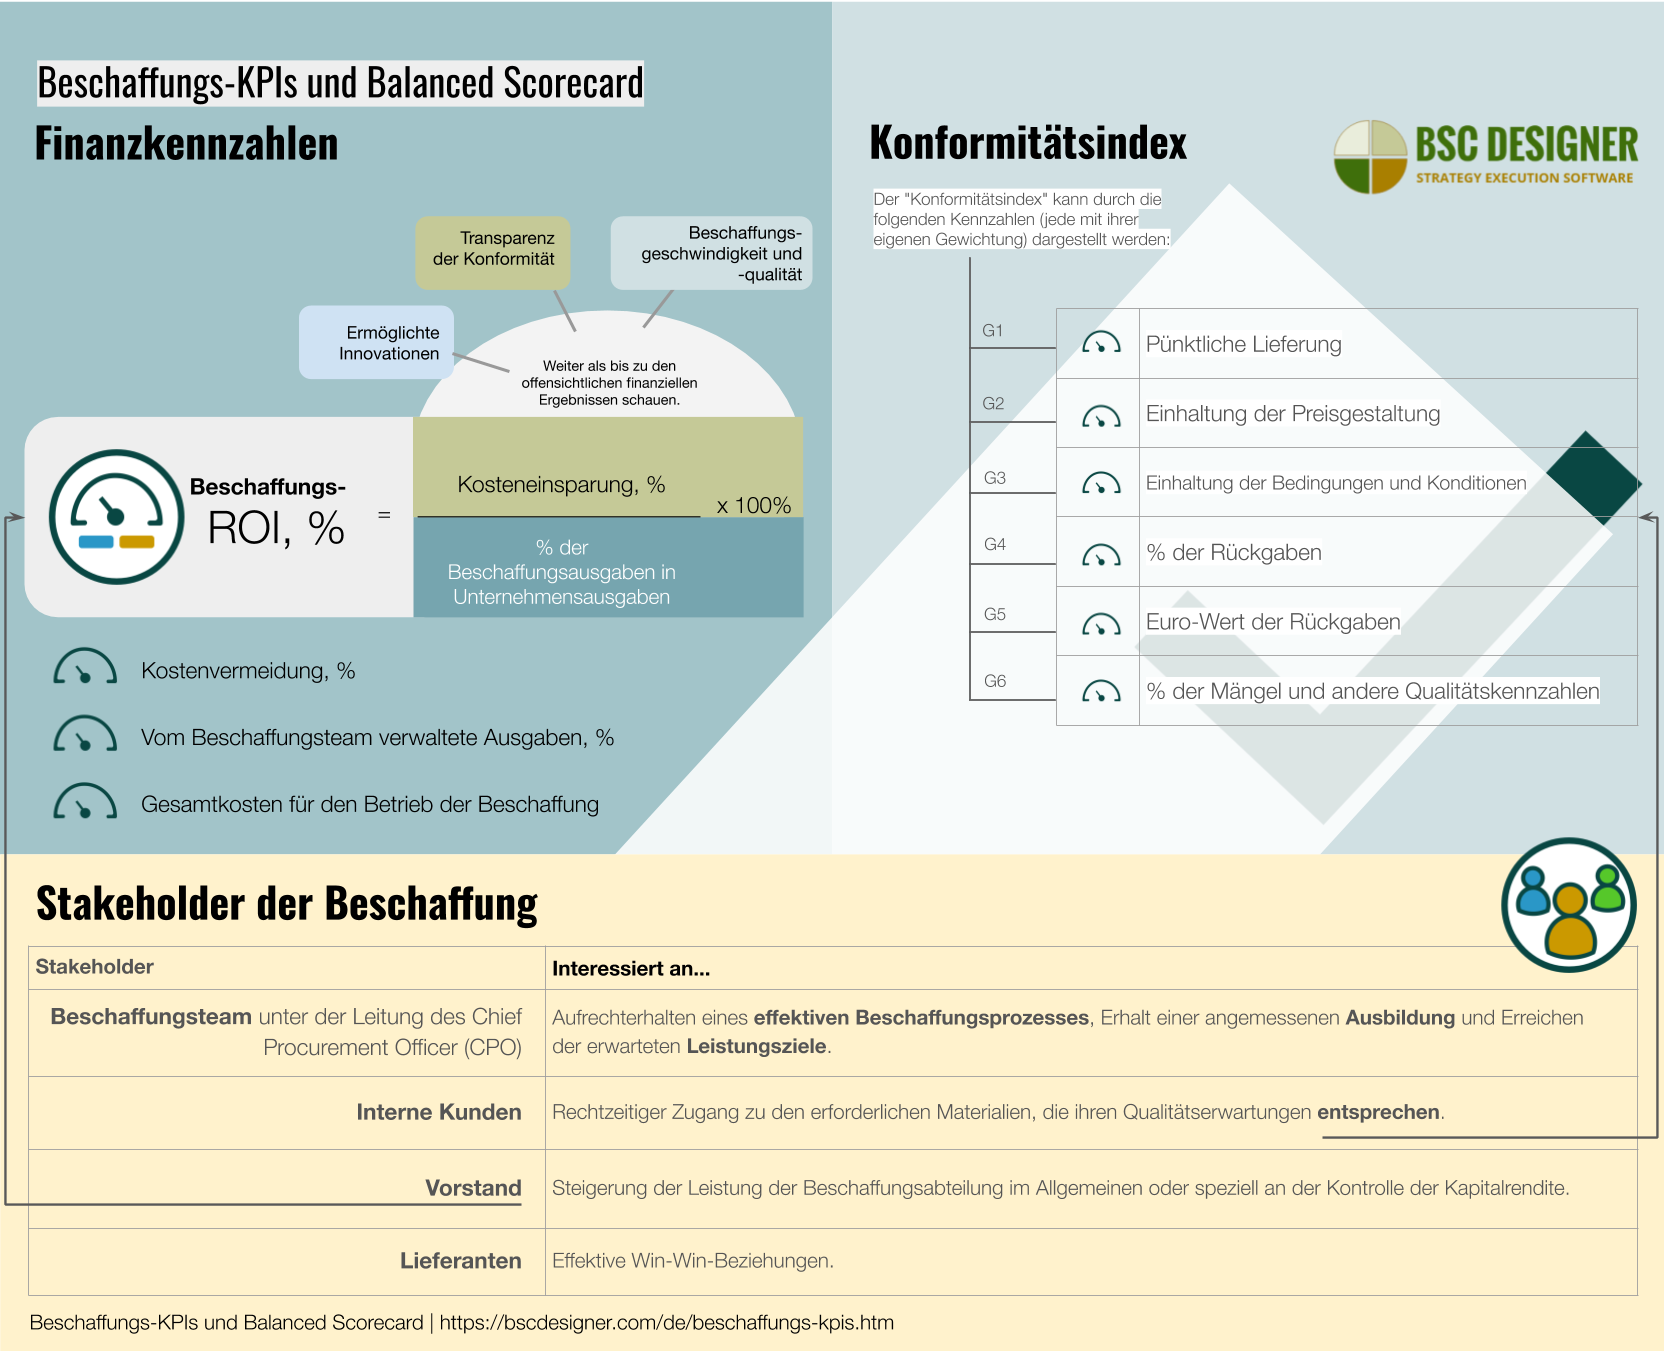 Beschaffungs-KPIs and Scorecard